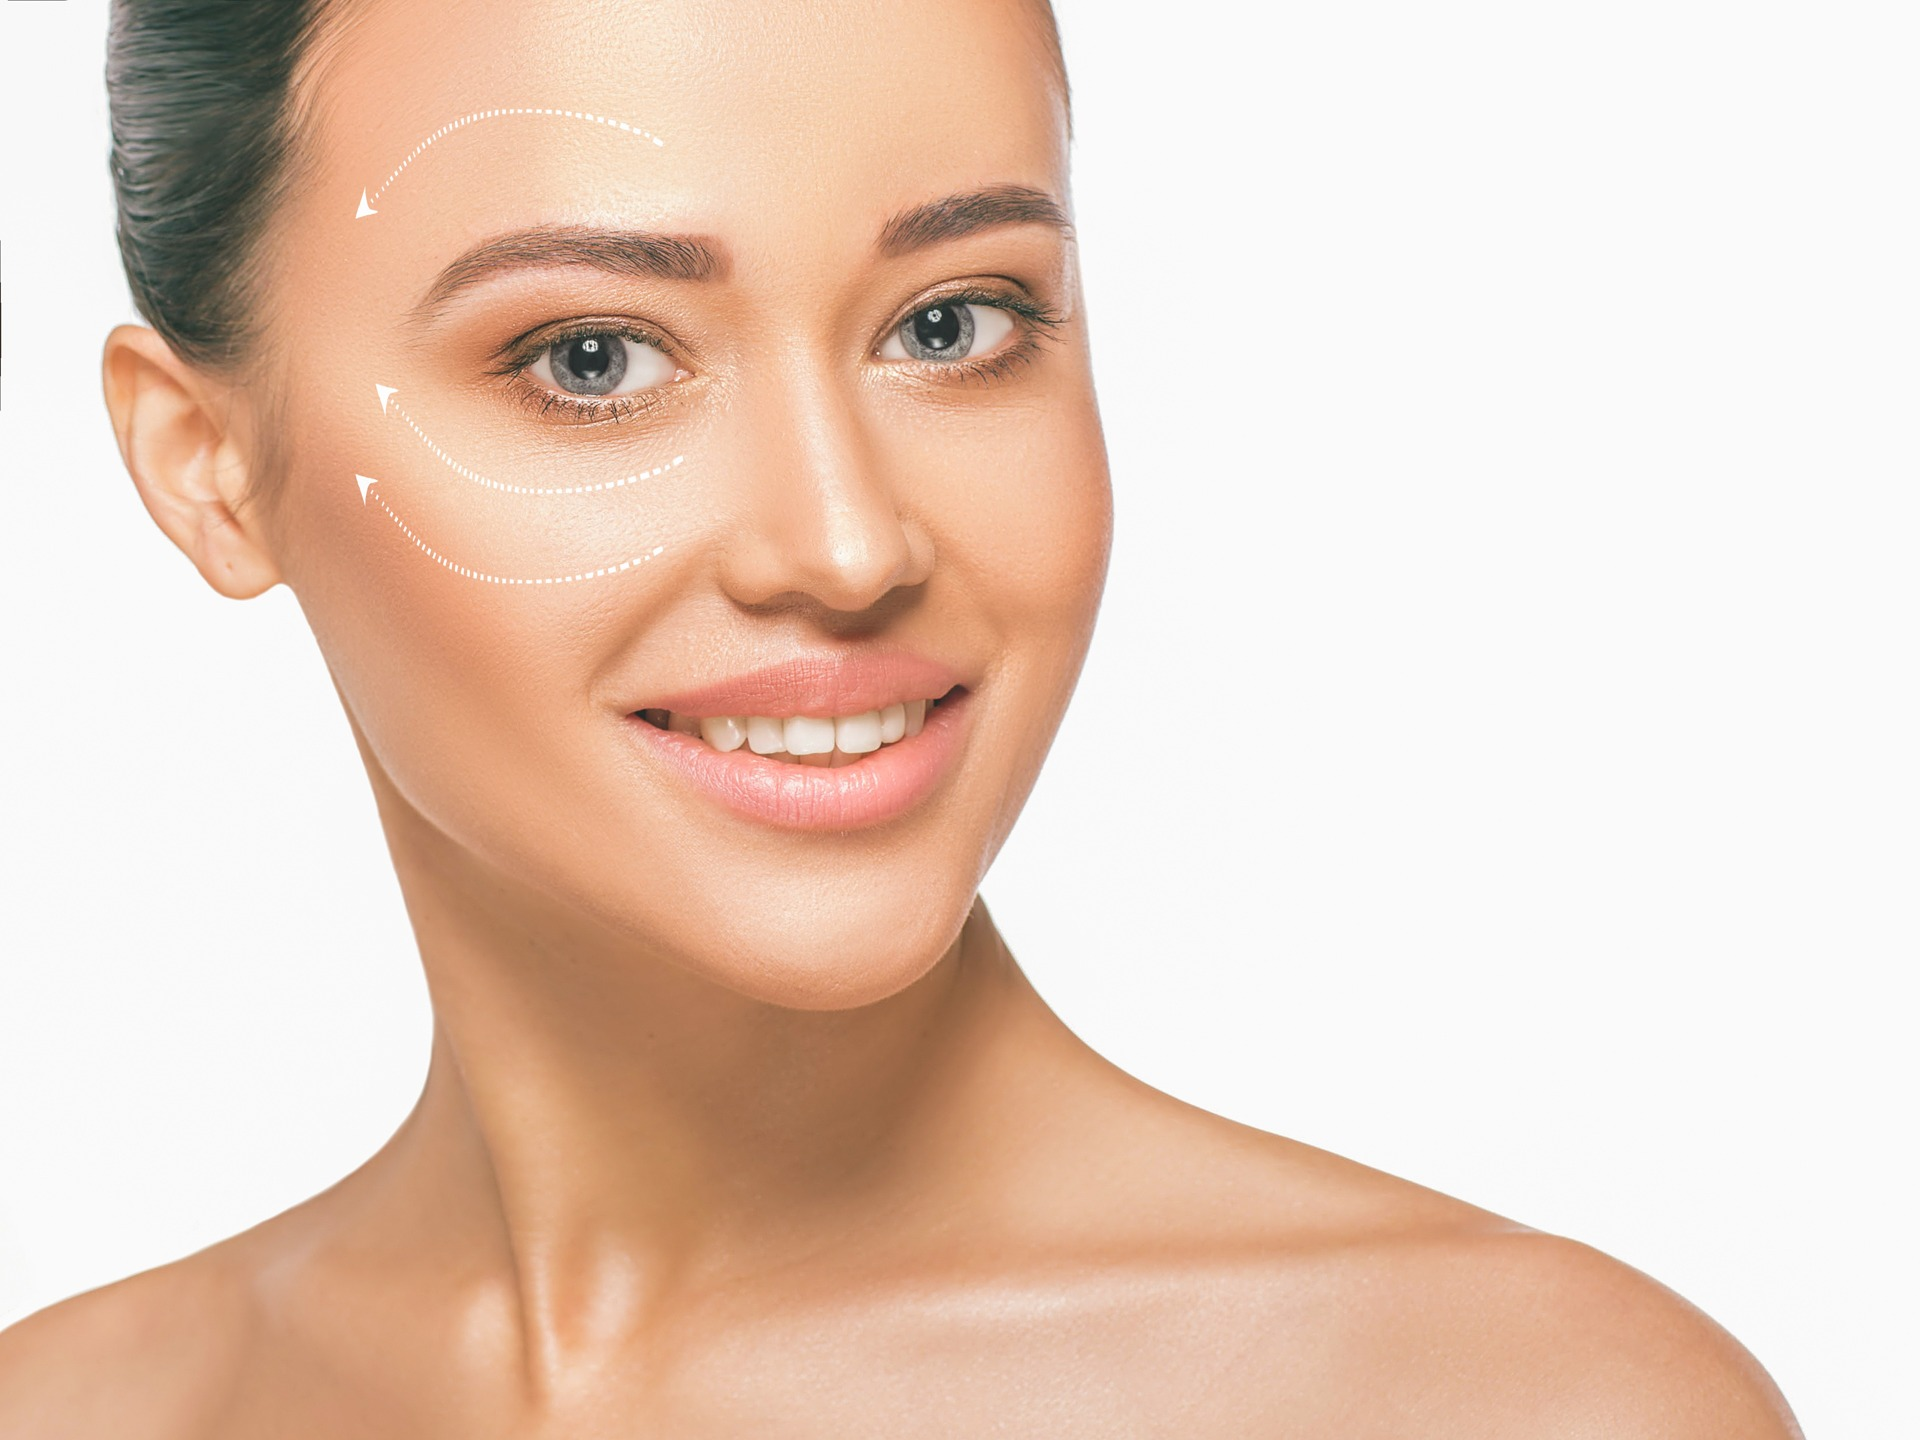 portrait of beautiful woman with perfect skin face, with massage lines on face, skin care concept. Caring for the skin around the eyes